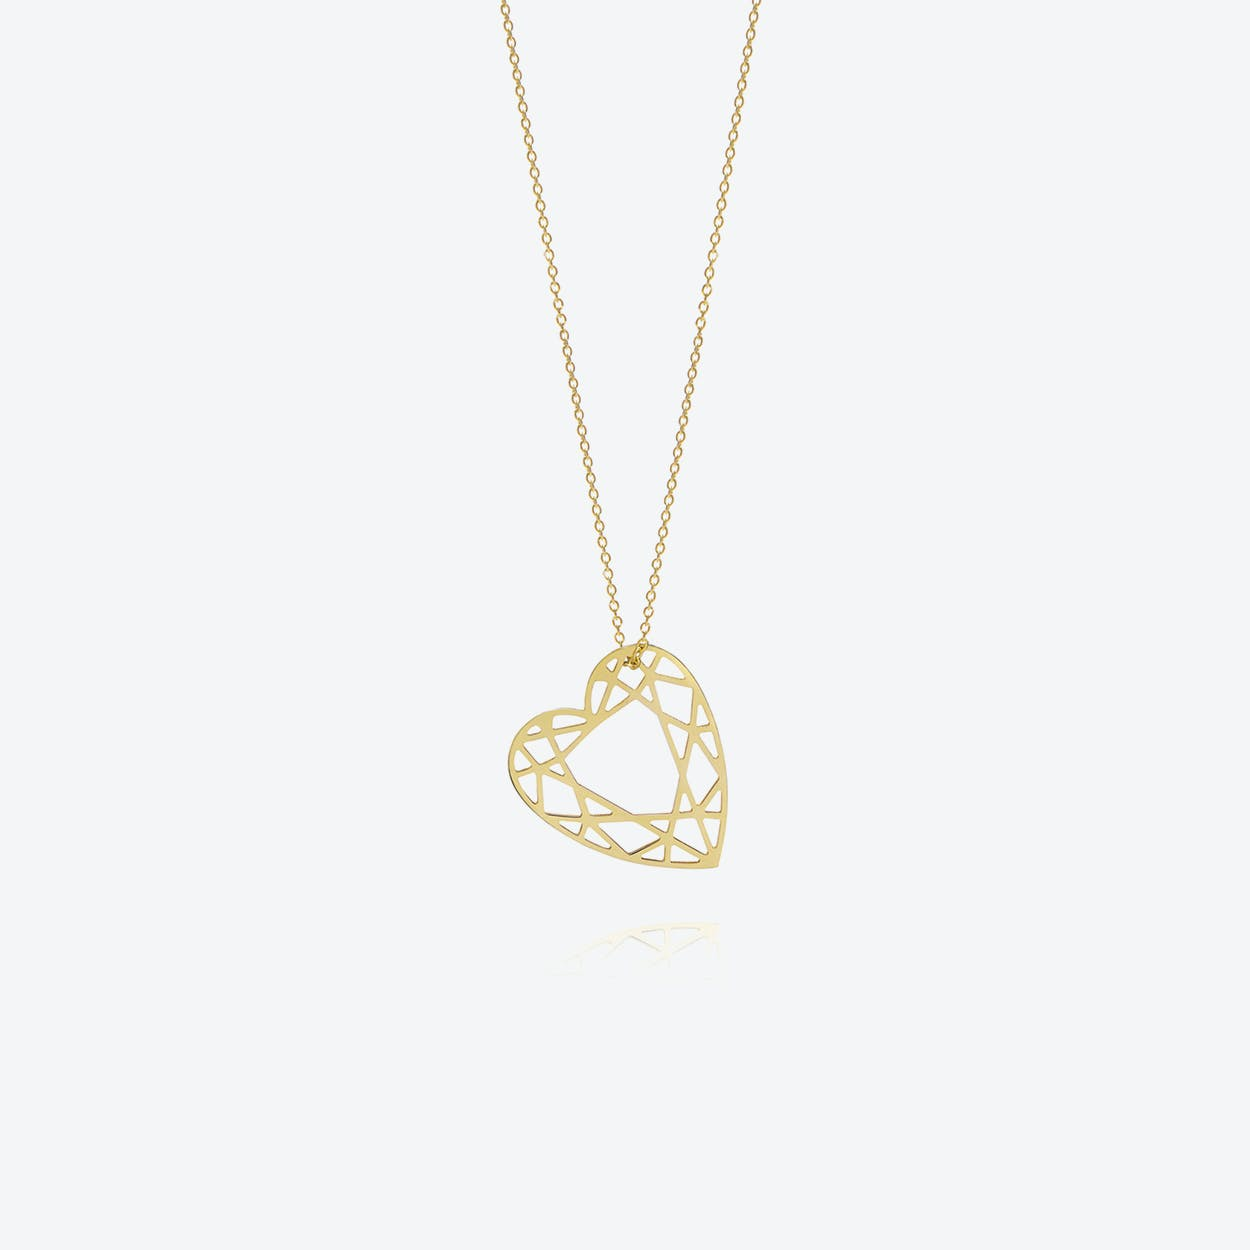 Medium Heart Diamond Necklace in Gold